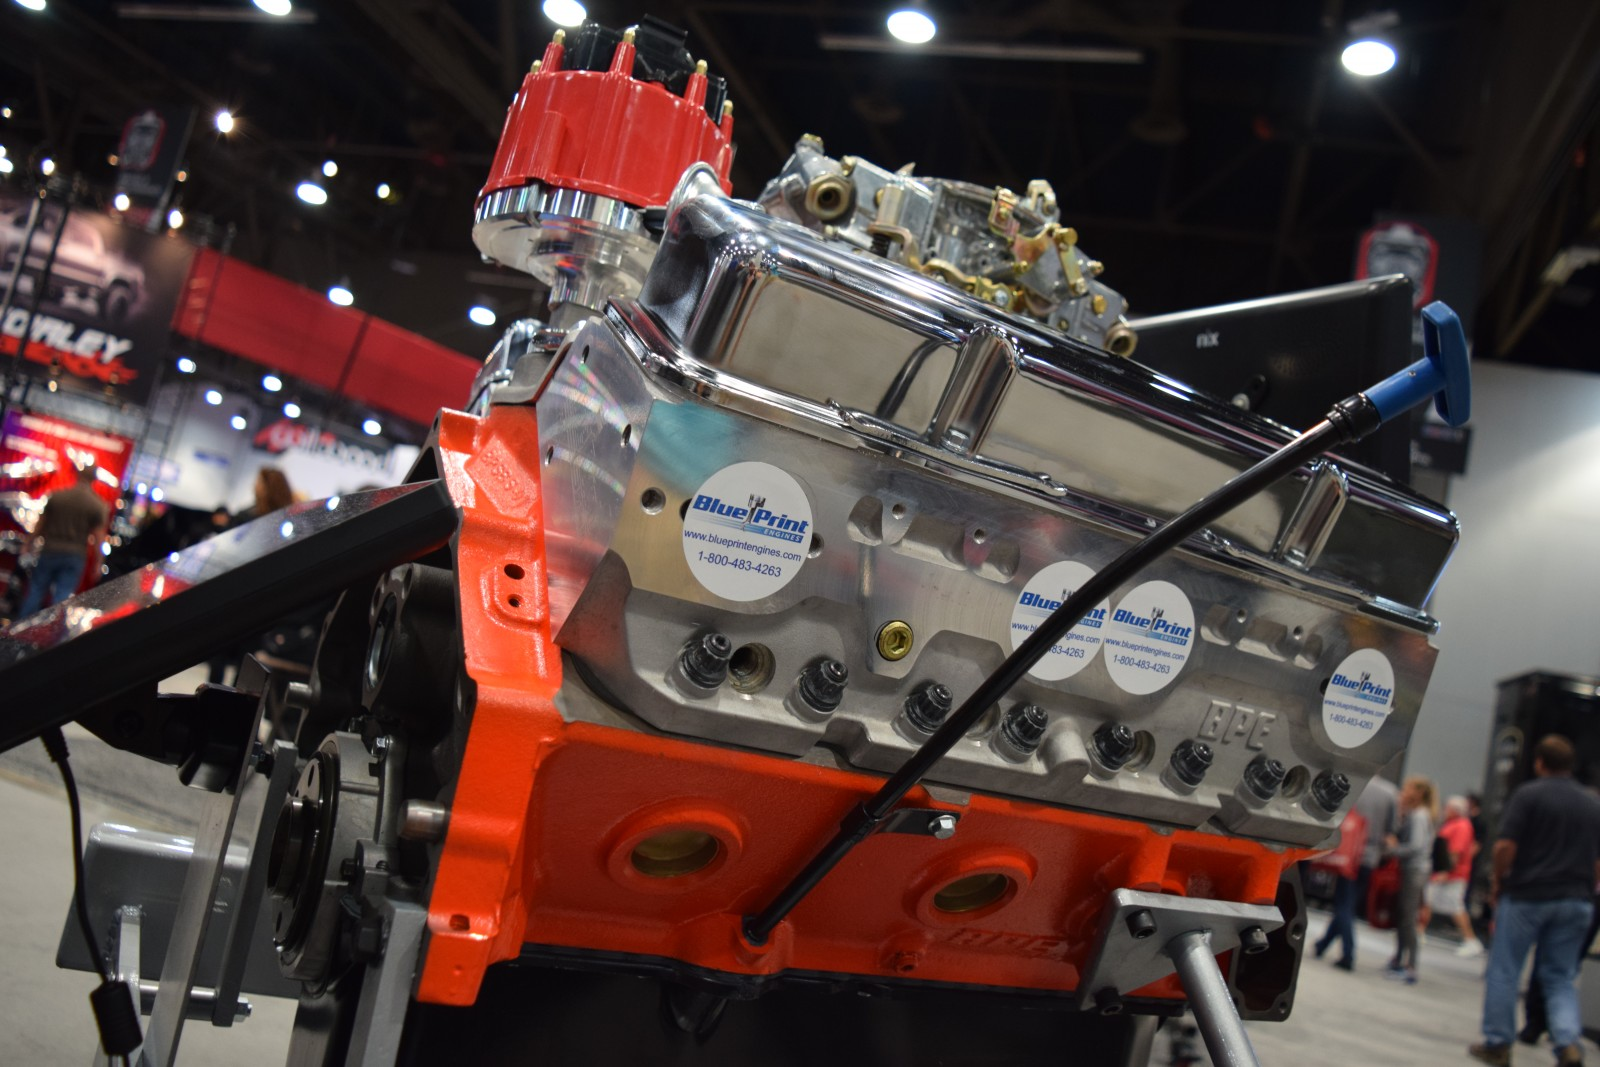 Blueprint engines to showcase new chevrolet 400 engine line at sema blueprint engines to showcase new chevrolet 400 engine line at sema 2015 onallcylinders malvernweather Gallery